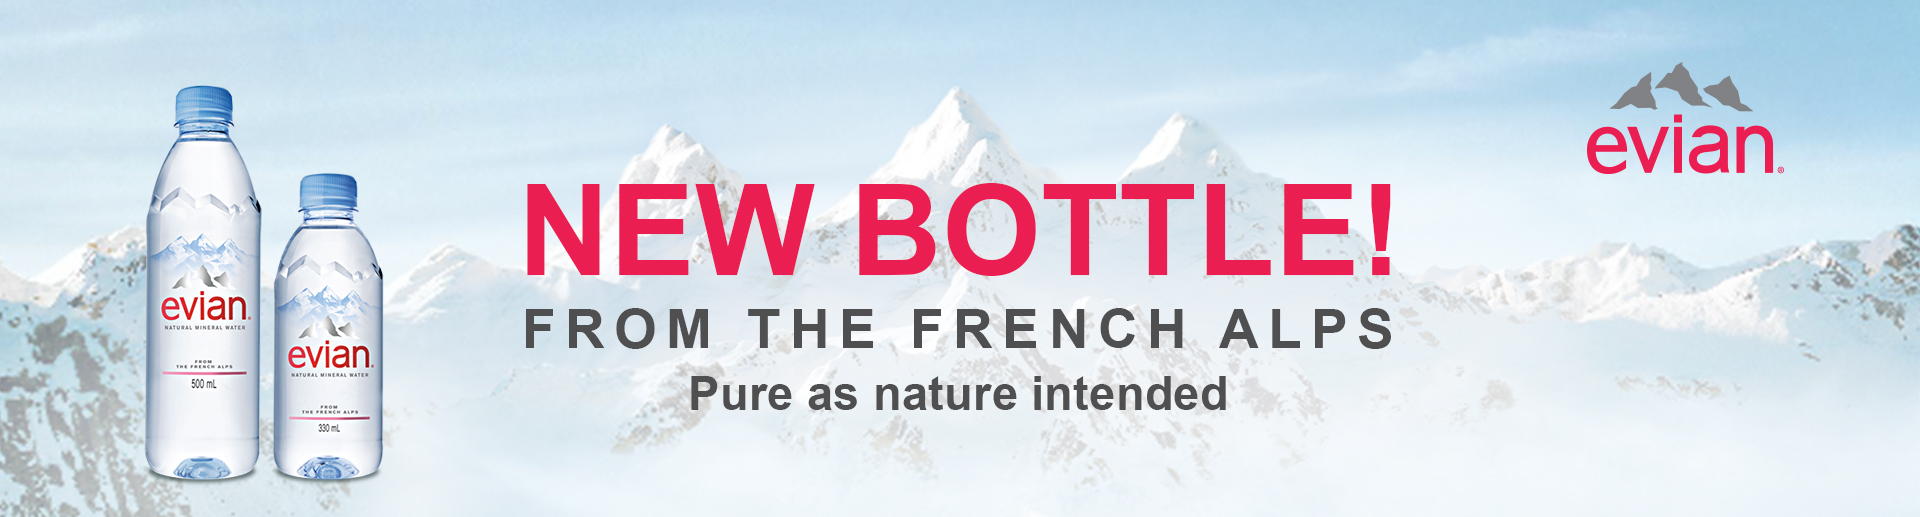 Evian new bottle - CHAWAWA One Stop Marketing Service